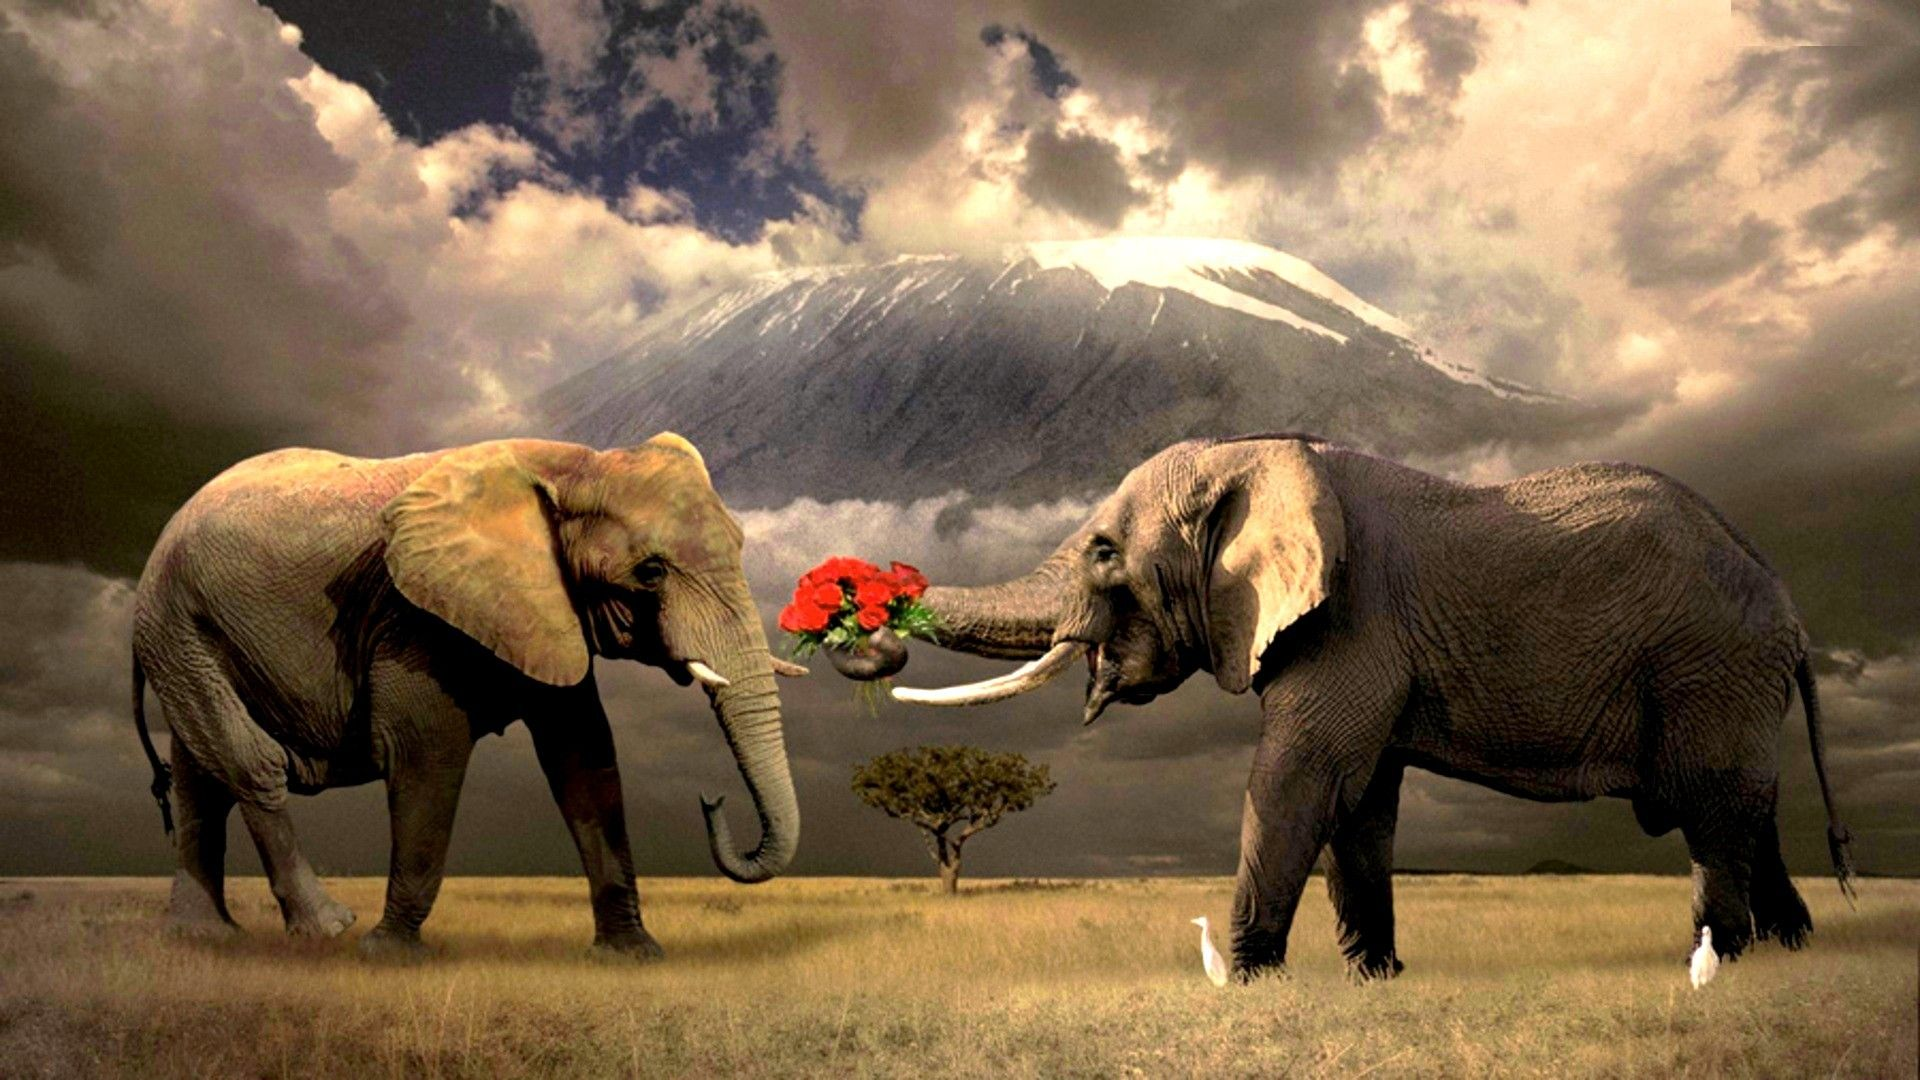 Hd wallpaper elephant - Hd Elephant Wallpaper 1080p Wallpapers Hd Wallpapers Pictures